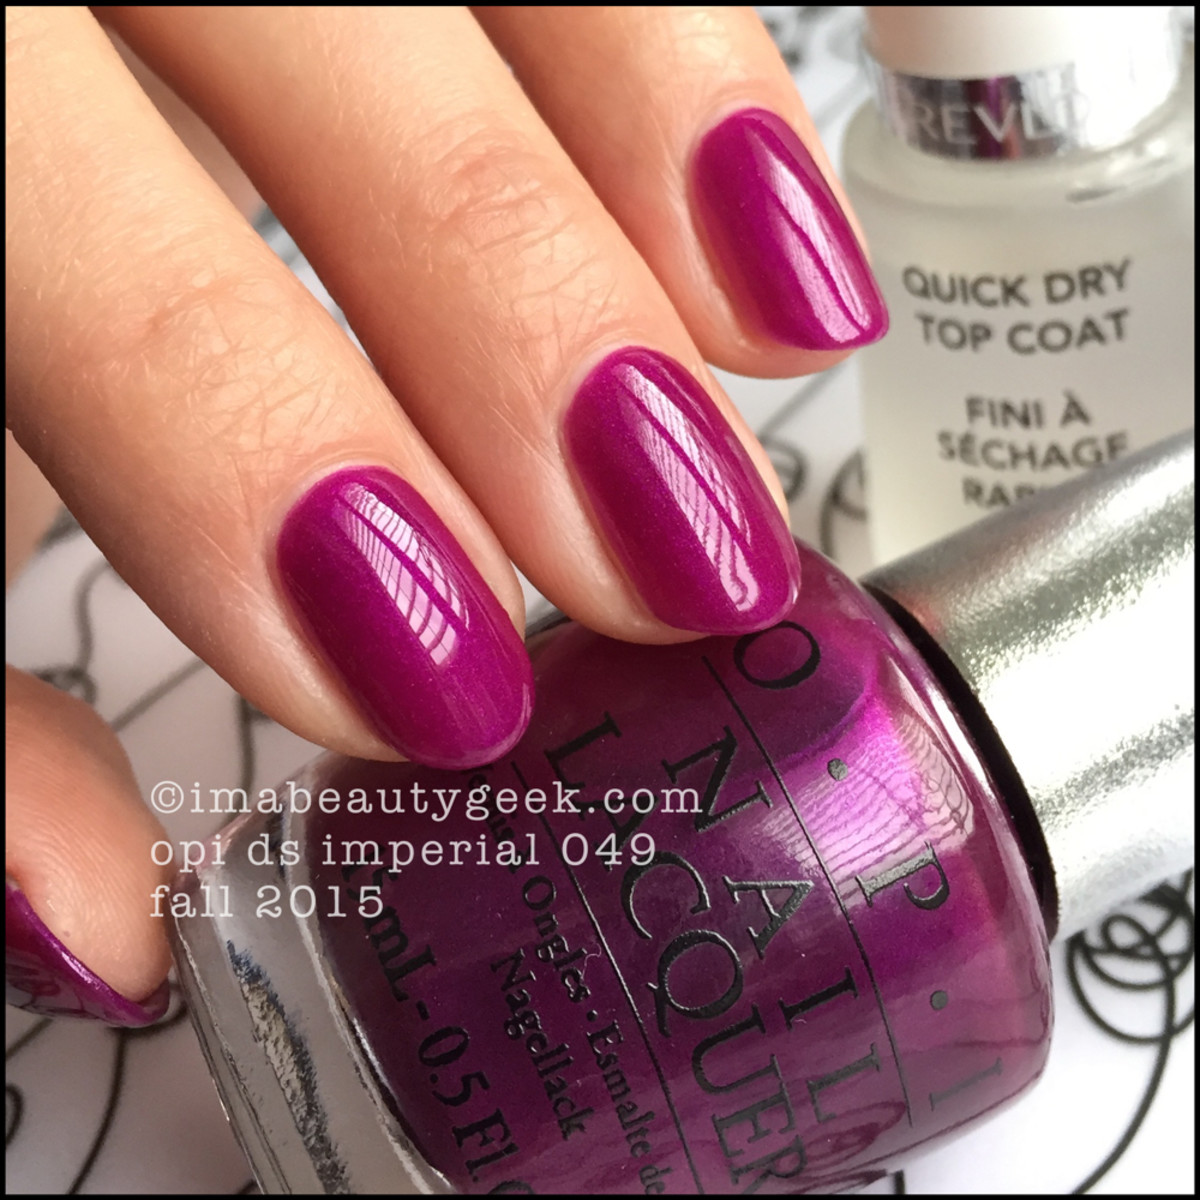 OPI DS Imperial 049 Fall 2015 with top coat